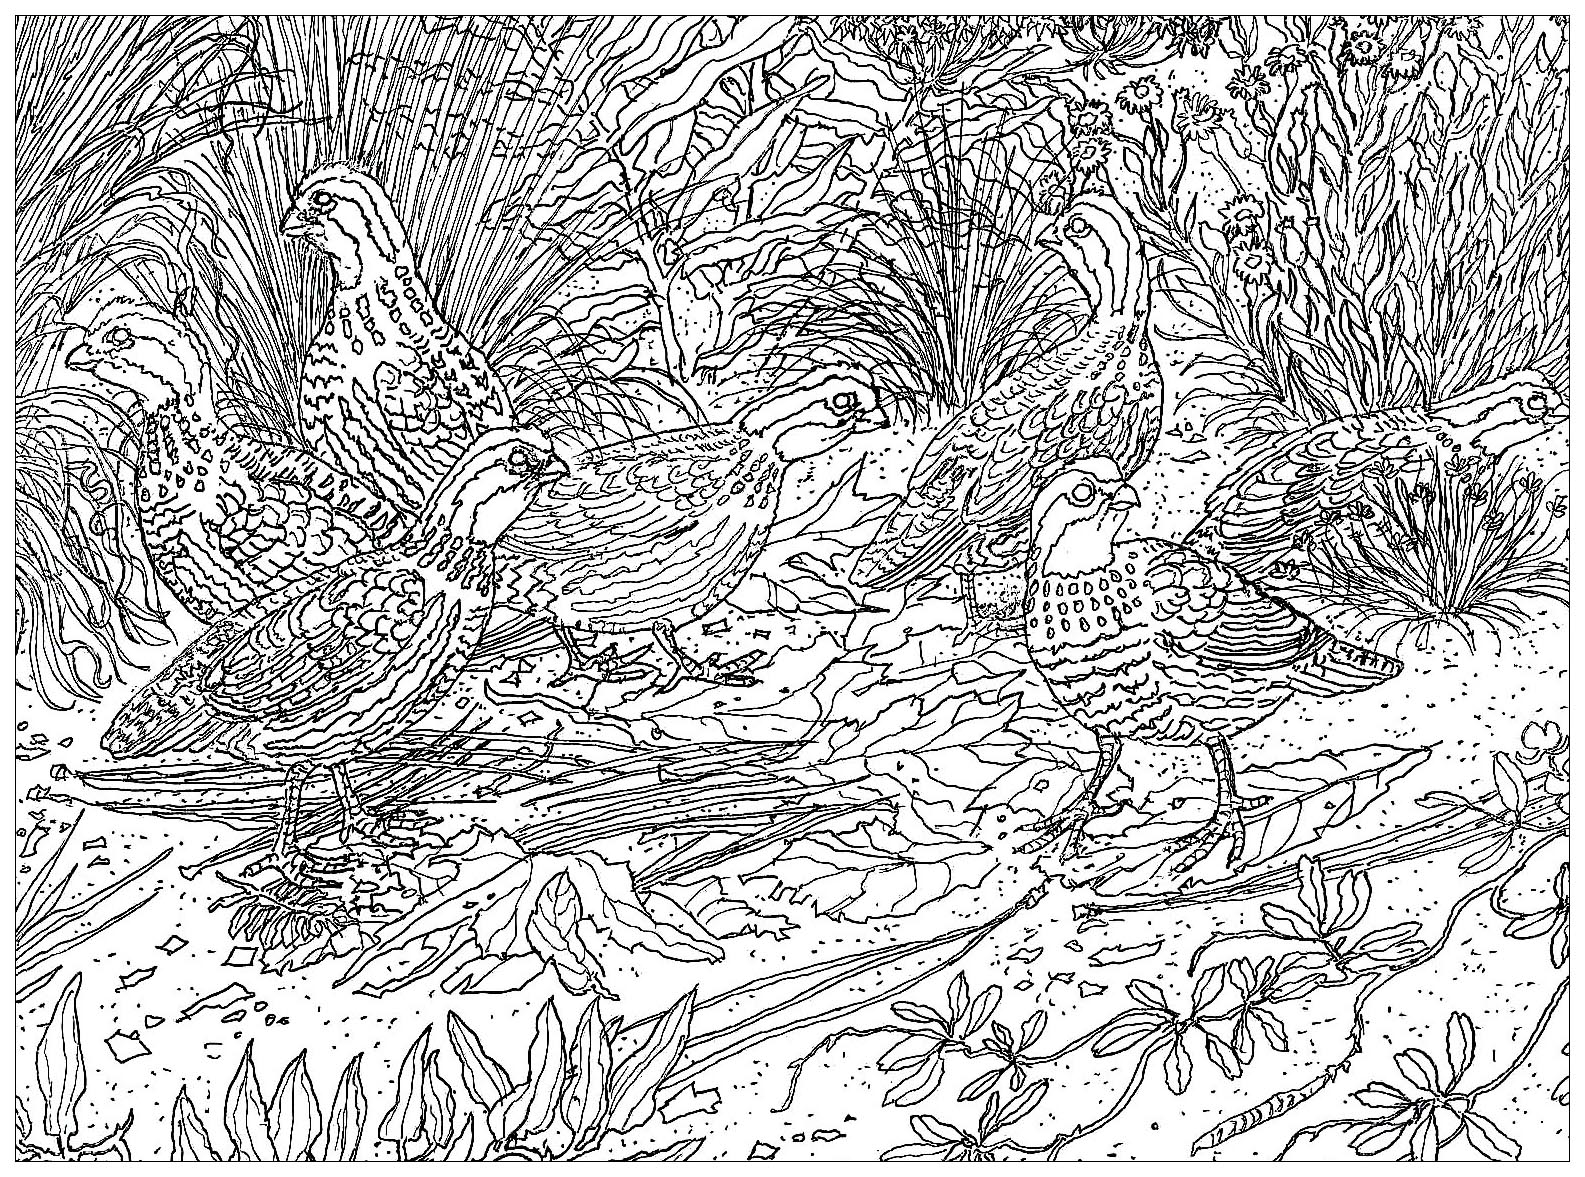 Birds on the ground, drawing made from a picture